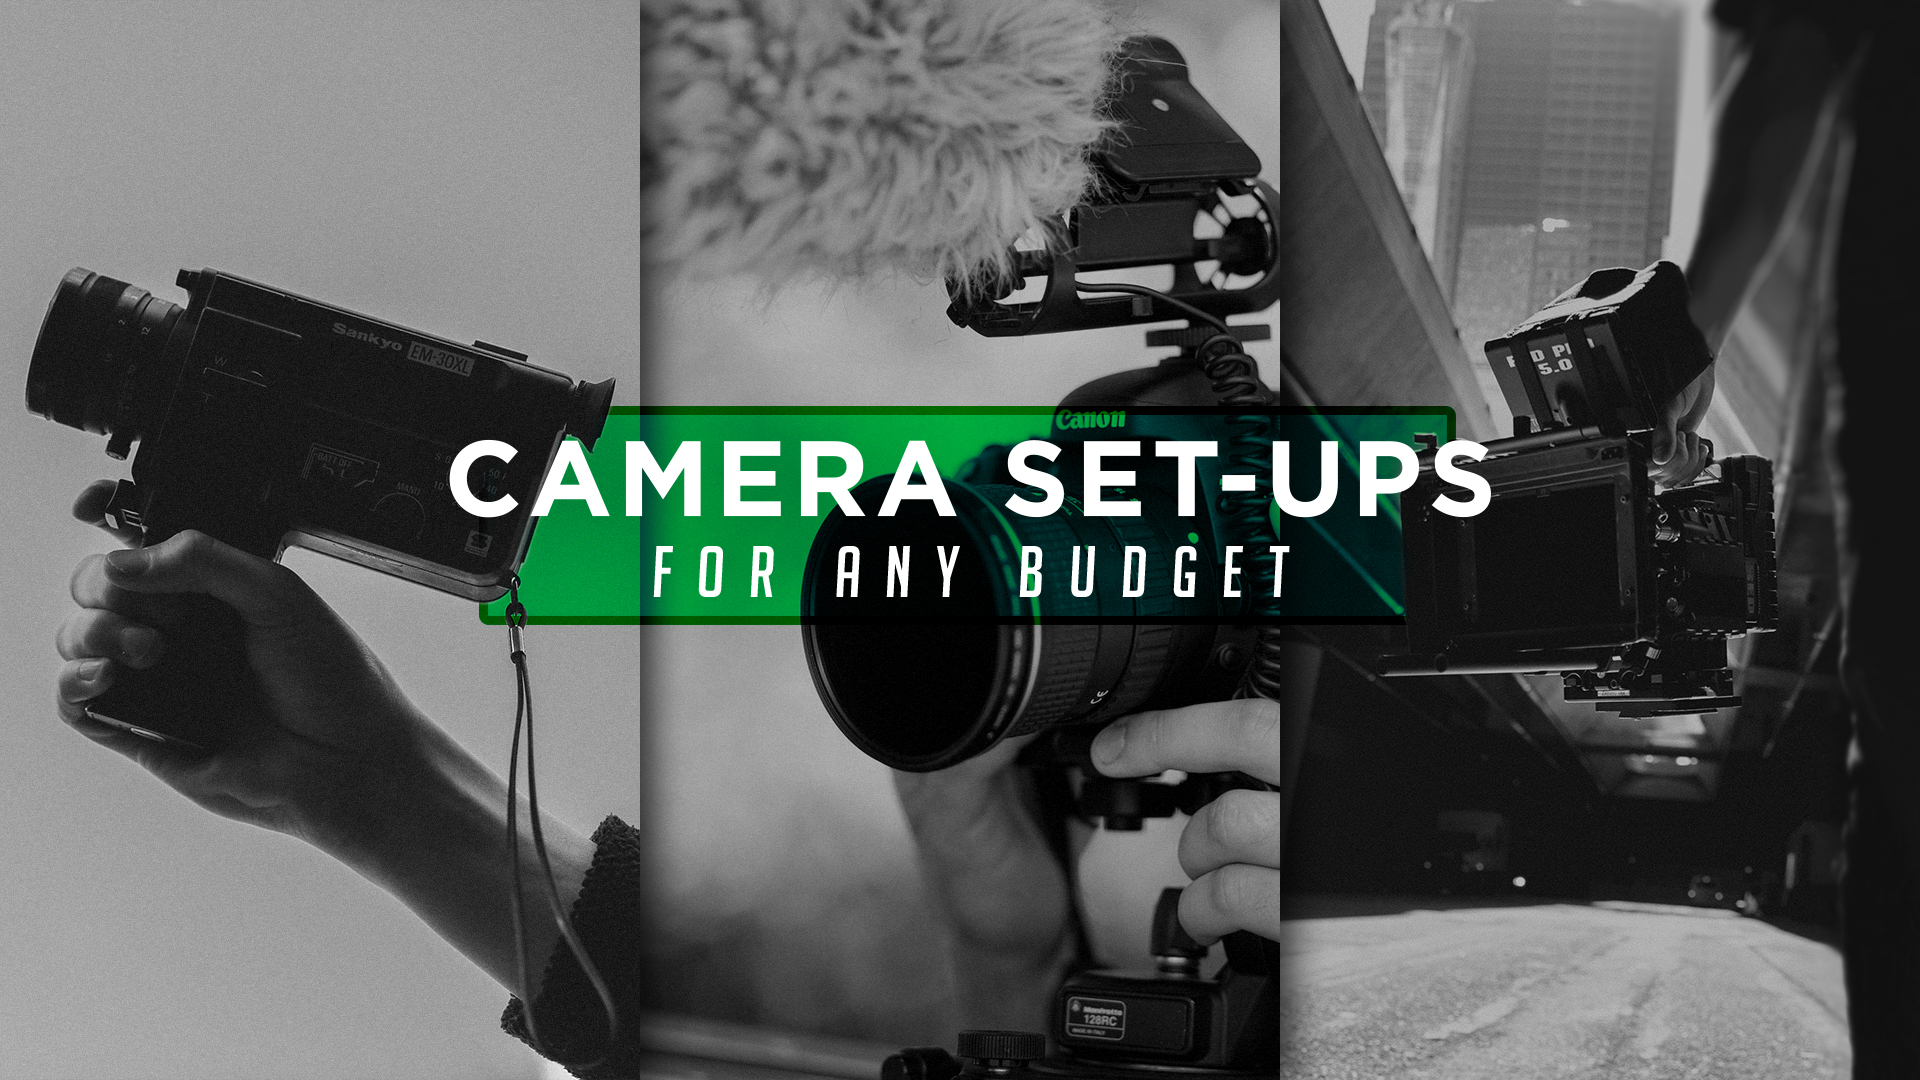 Recommended Camera Setups For Any Budget - The Igniter Blog